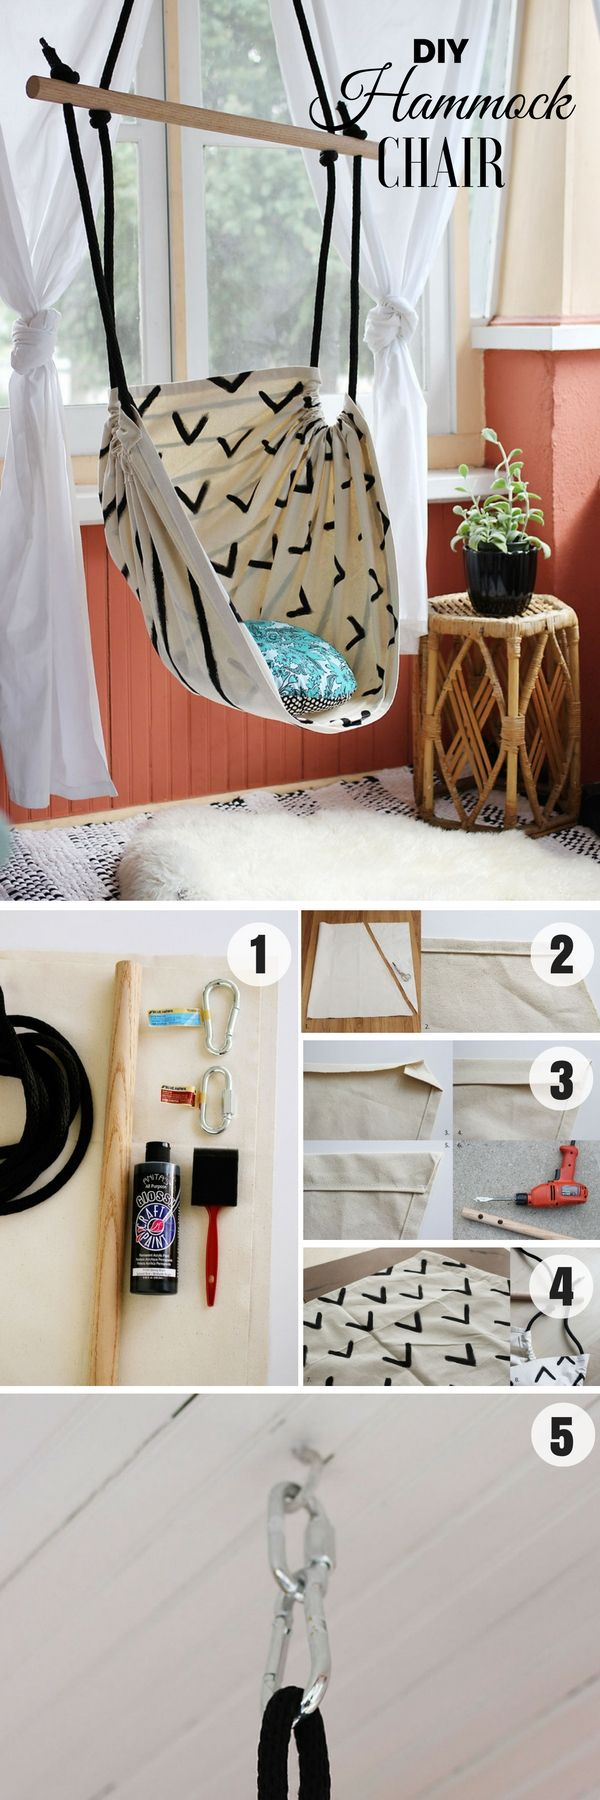 Do It Yourself Bedroom Decorations genial anything can become a diy diy decorating 16 Beautiful Diy Bedroom Decor Ideas That Will Inspire You